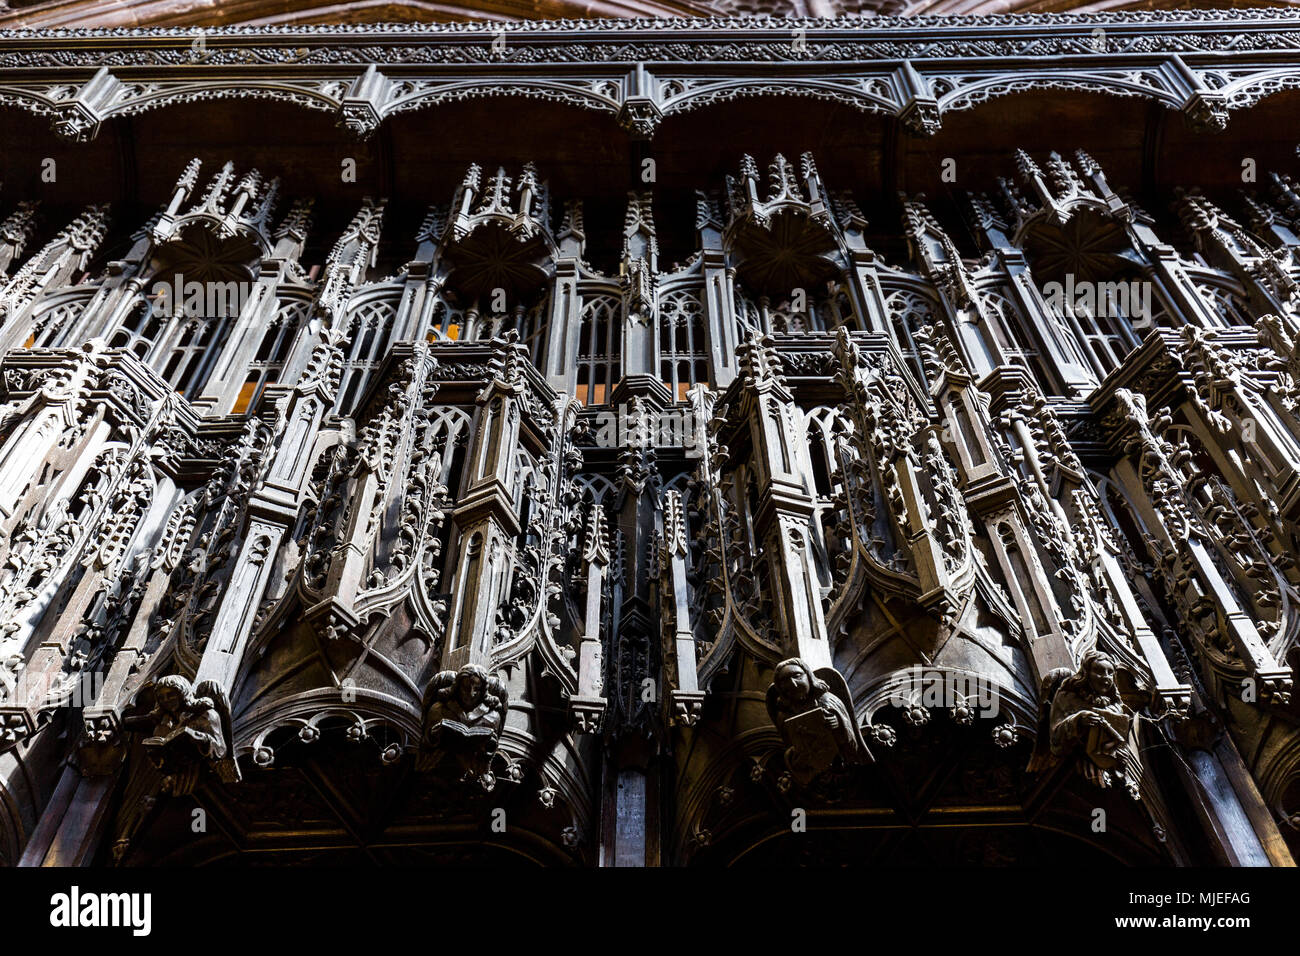 Europe, England, United Kingdom, Manchester - Manchester Cathedral - Stock Image